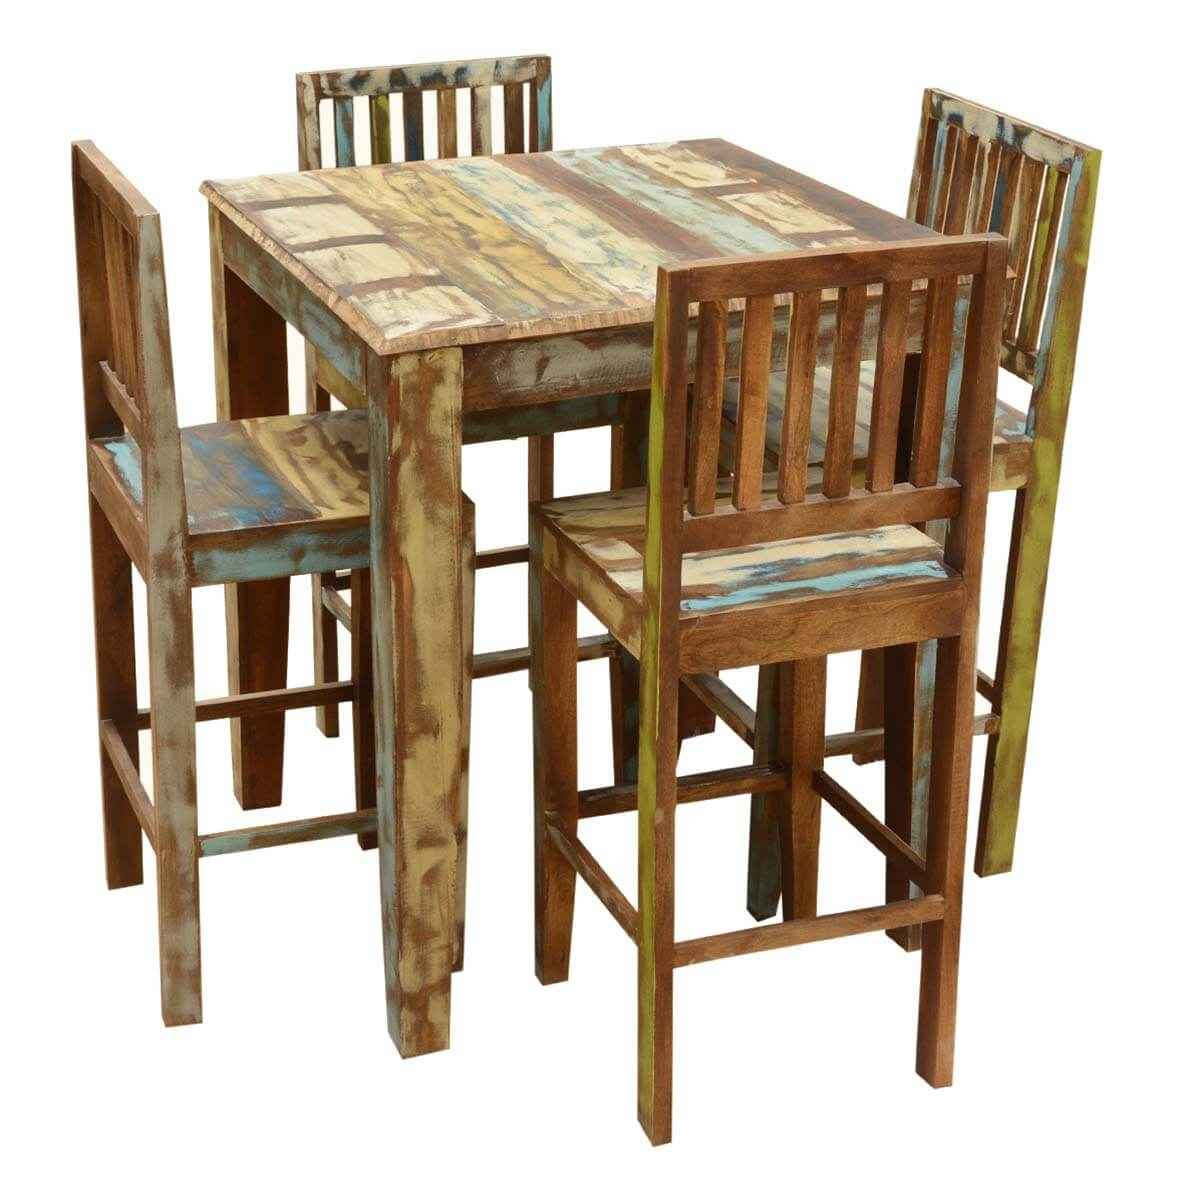 appalachian rustic reclaimed wood high bar table chair set. Black Bedroom Furniture Sets. Home Design Ideas